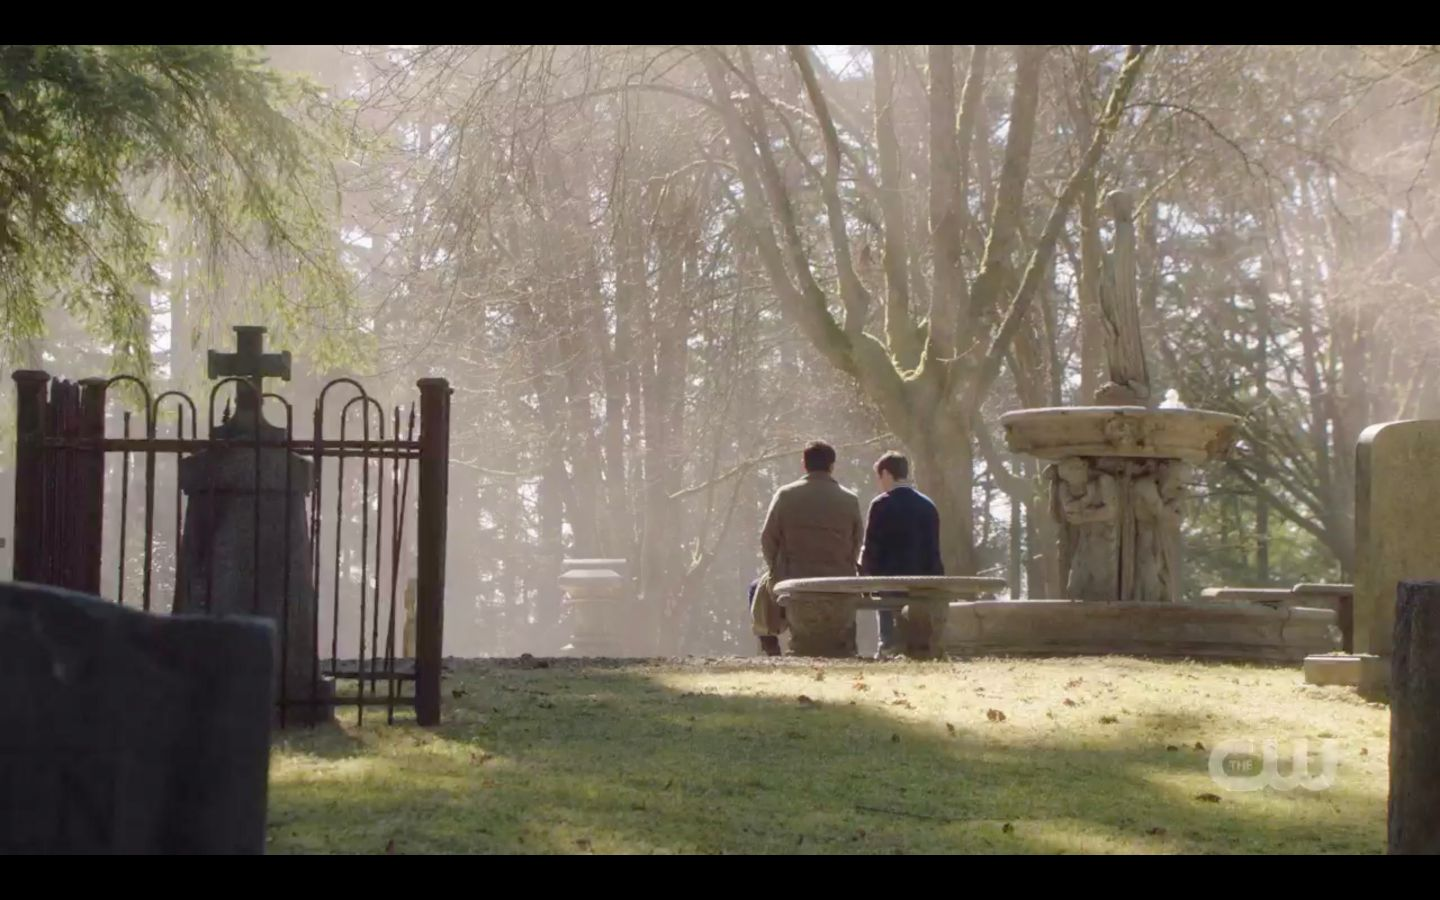 Jack with Castiel in cemetary waiting for Dean 14.20